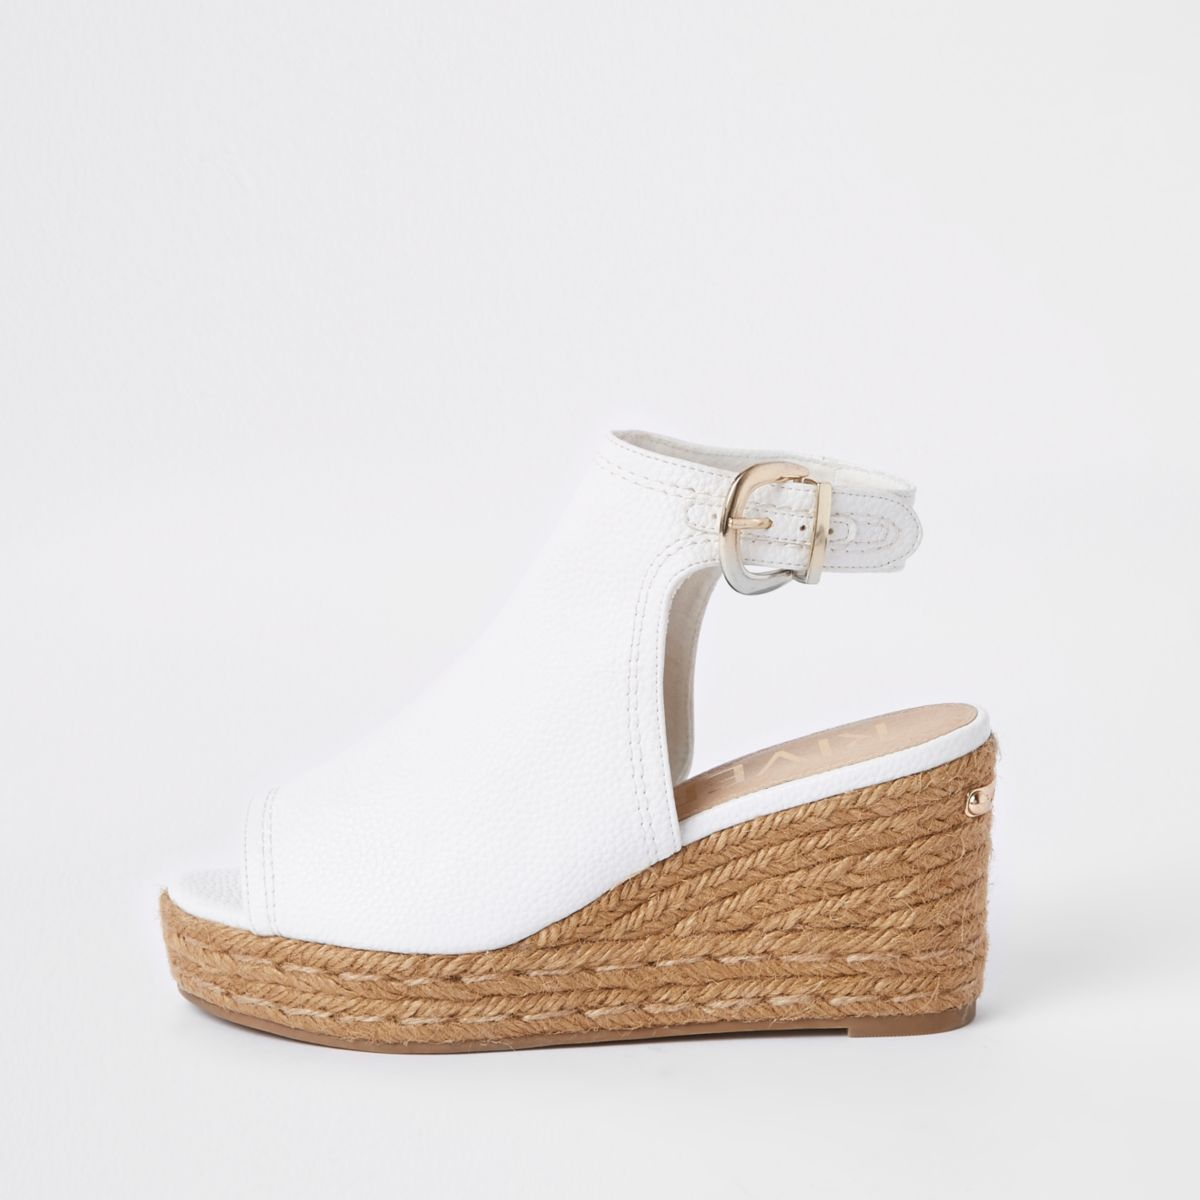 White Espadrille Wedge Shoe Boots by River Island